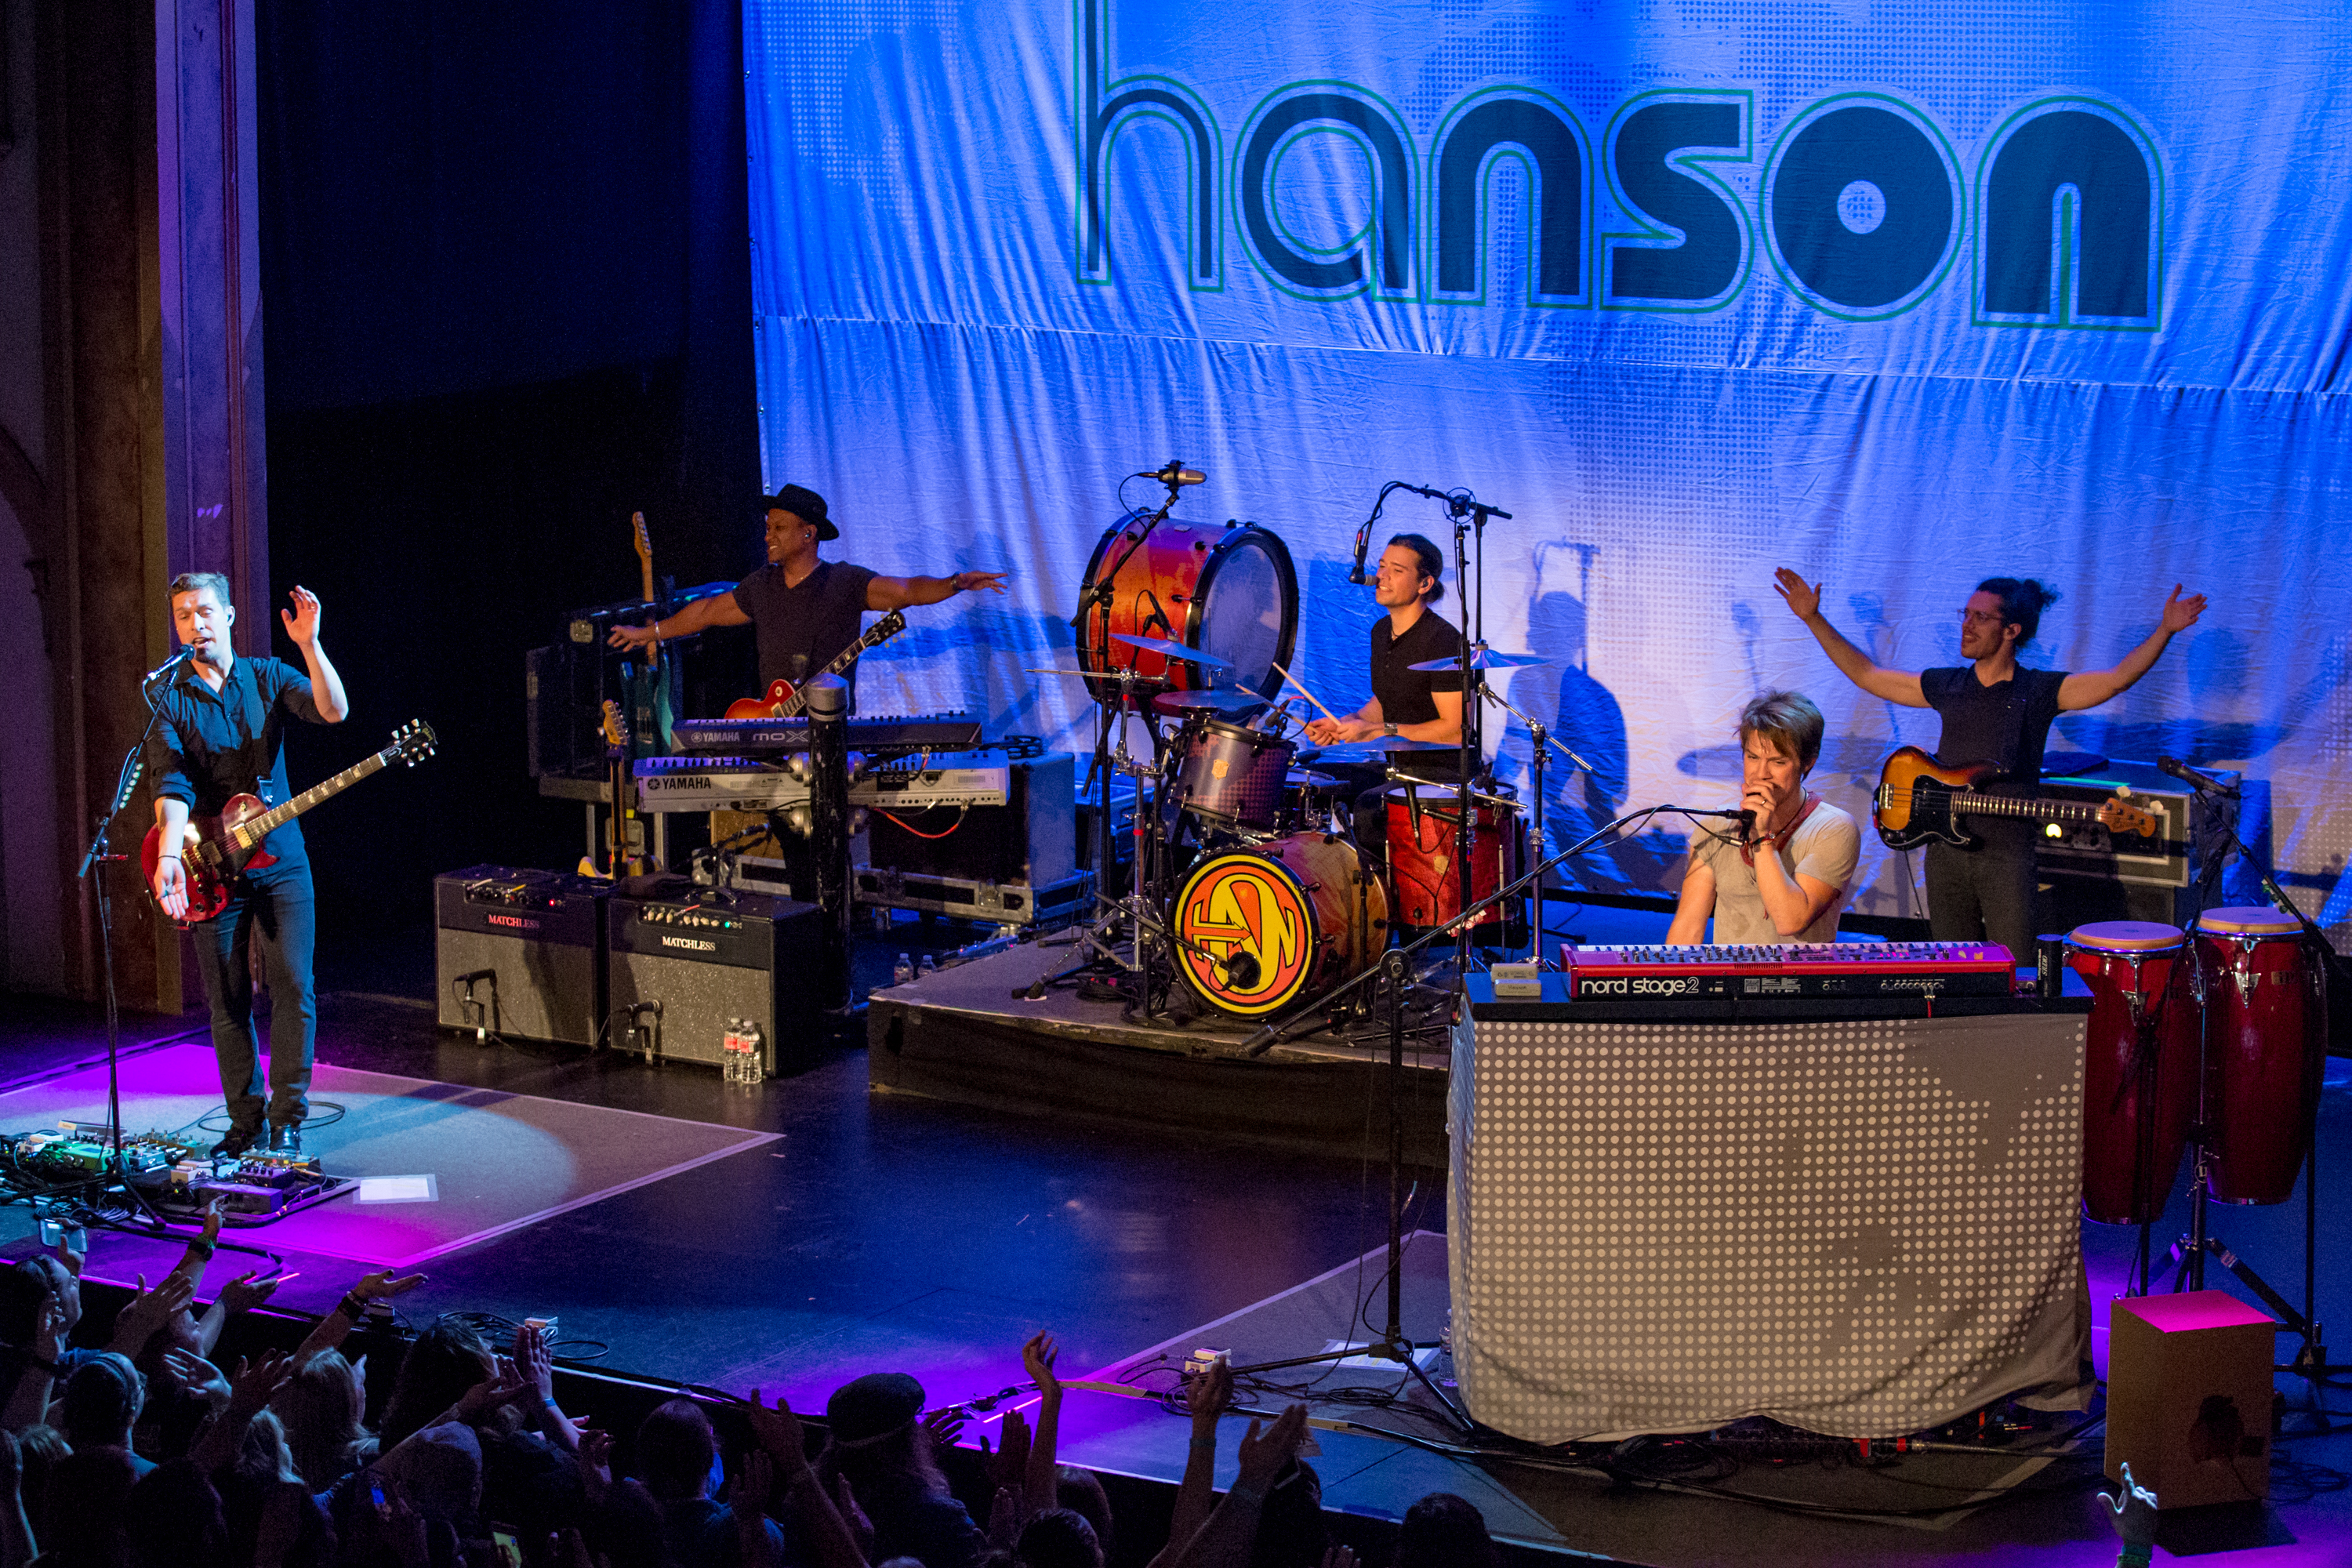 Fans were in for an mmbopping good time as Hanson swung by Neptune Theater Tuesday night (October 17, 2017) as part of their 25th Anniversary Tour. (Image: Sunita Martini / Seattle Refined)